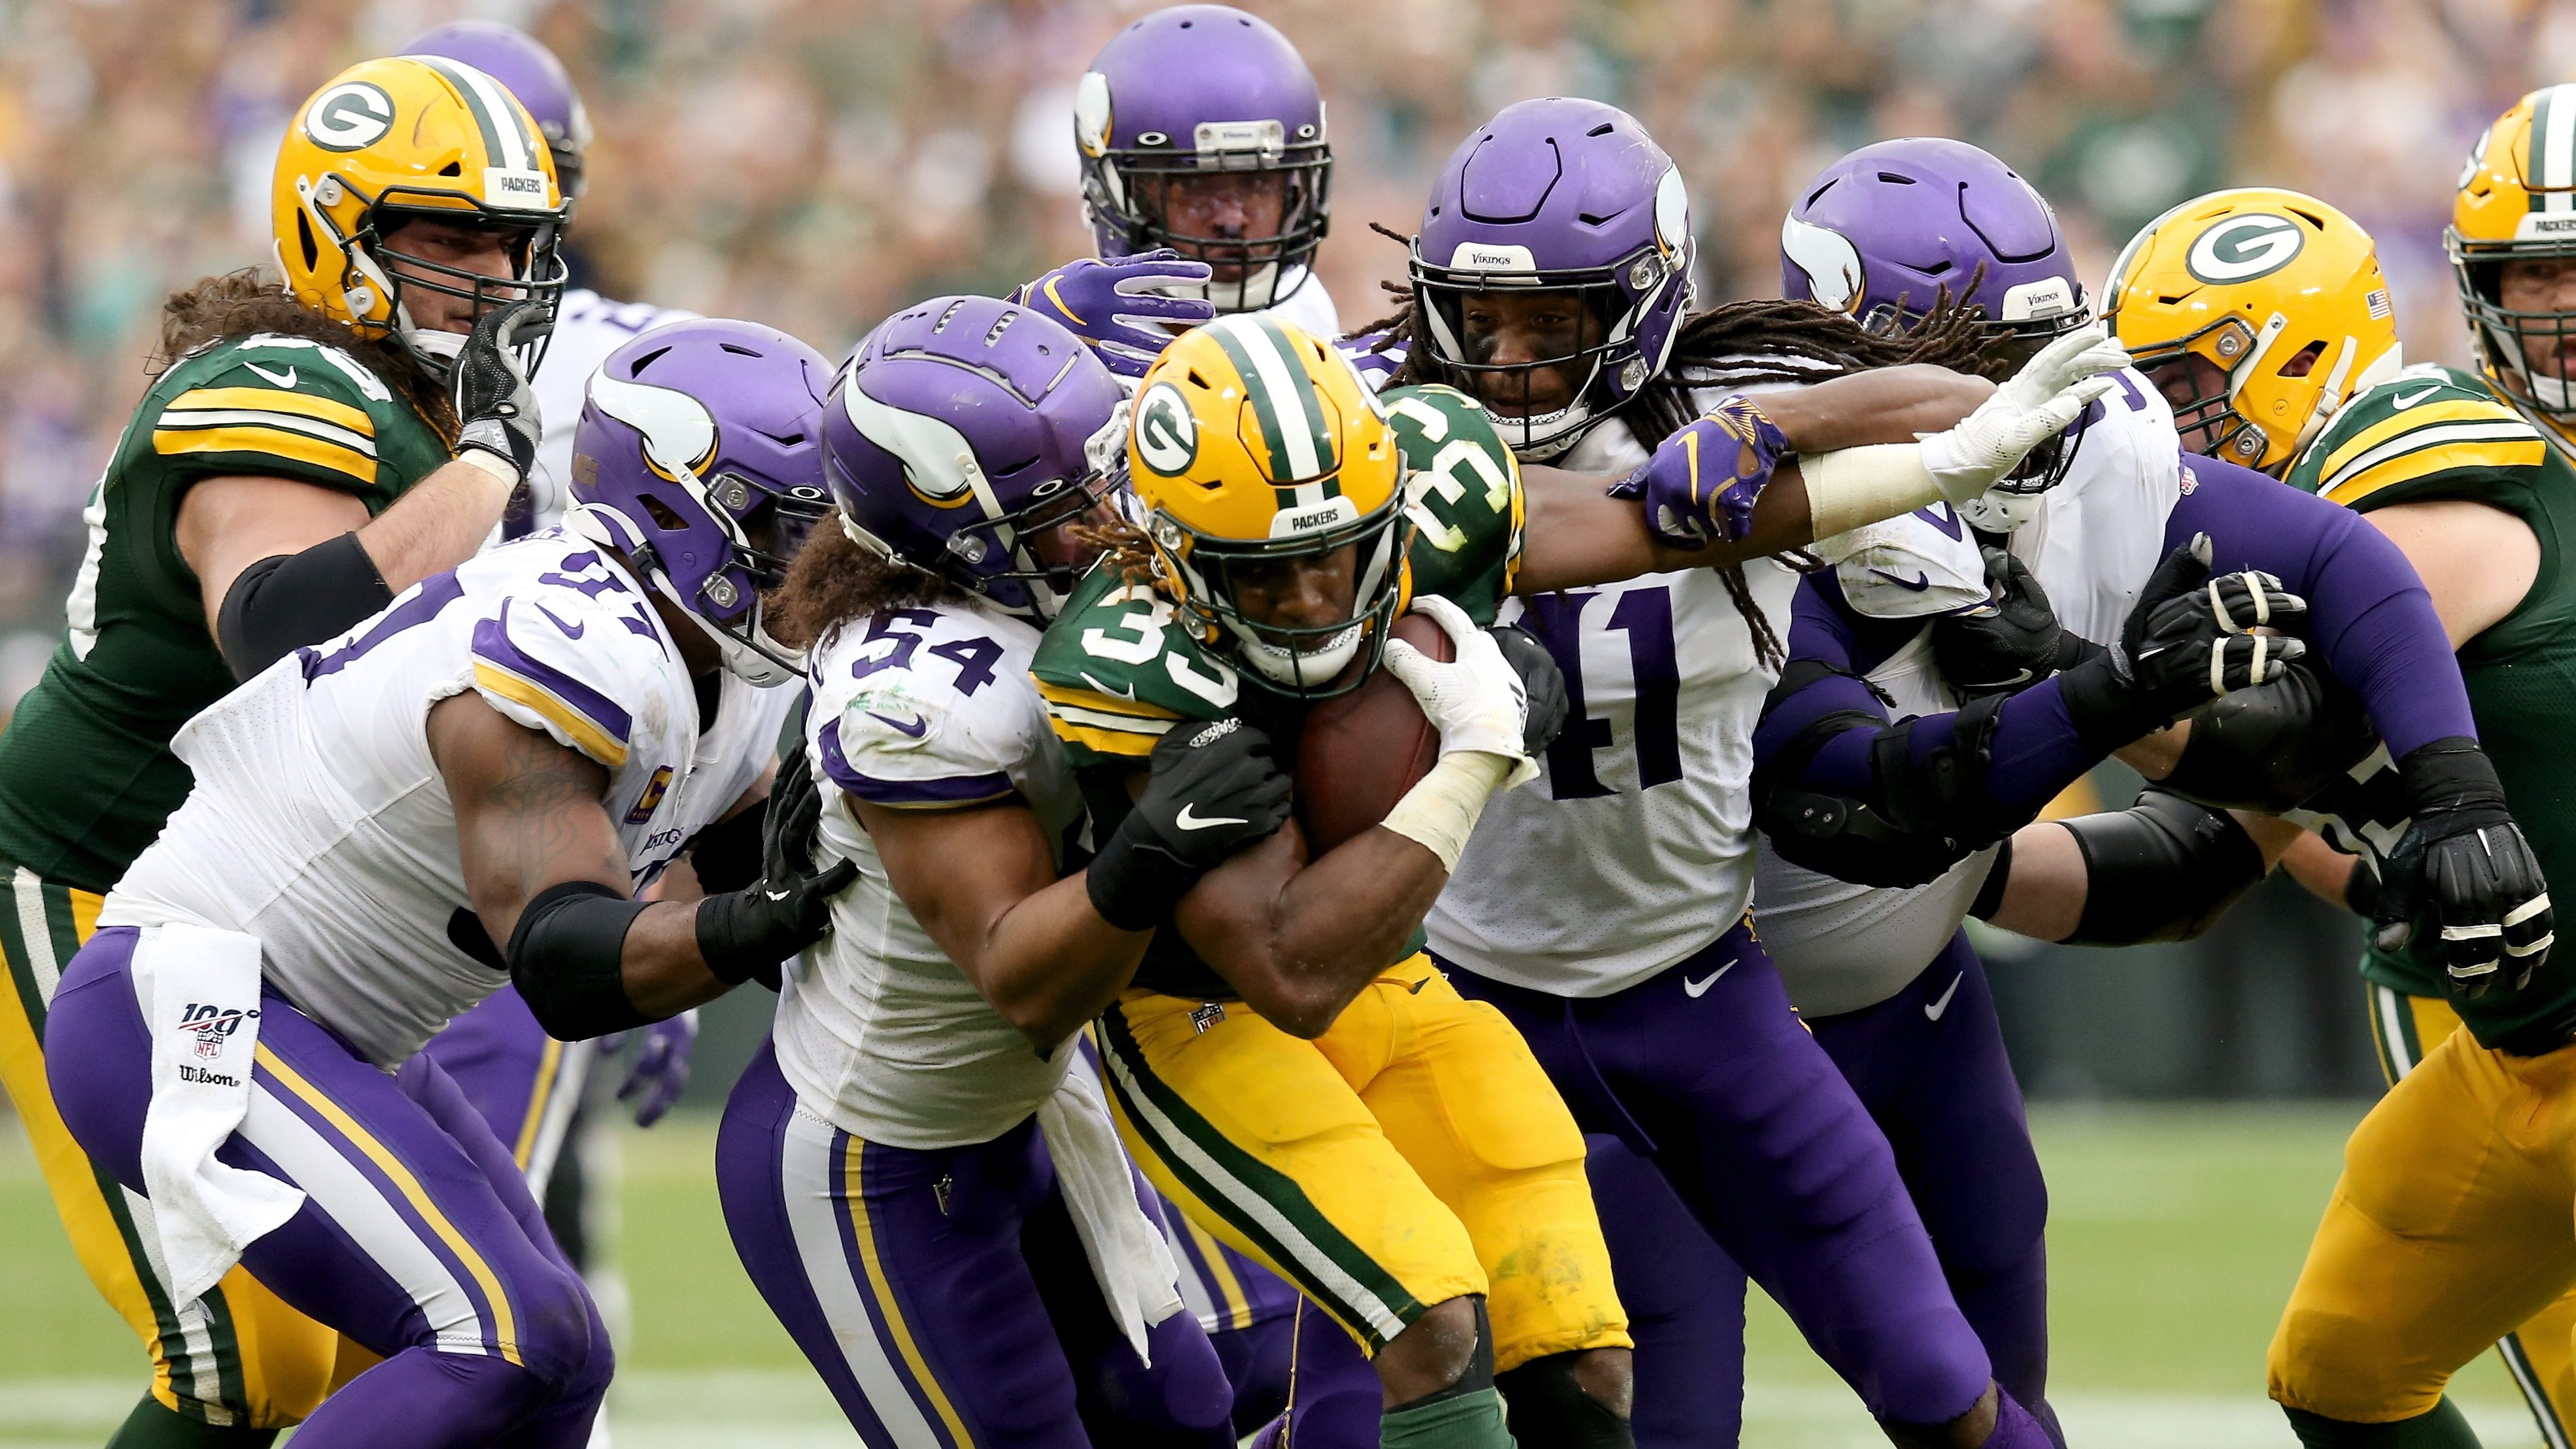 Vikings packers spread betting line sports betting tips football free